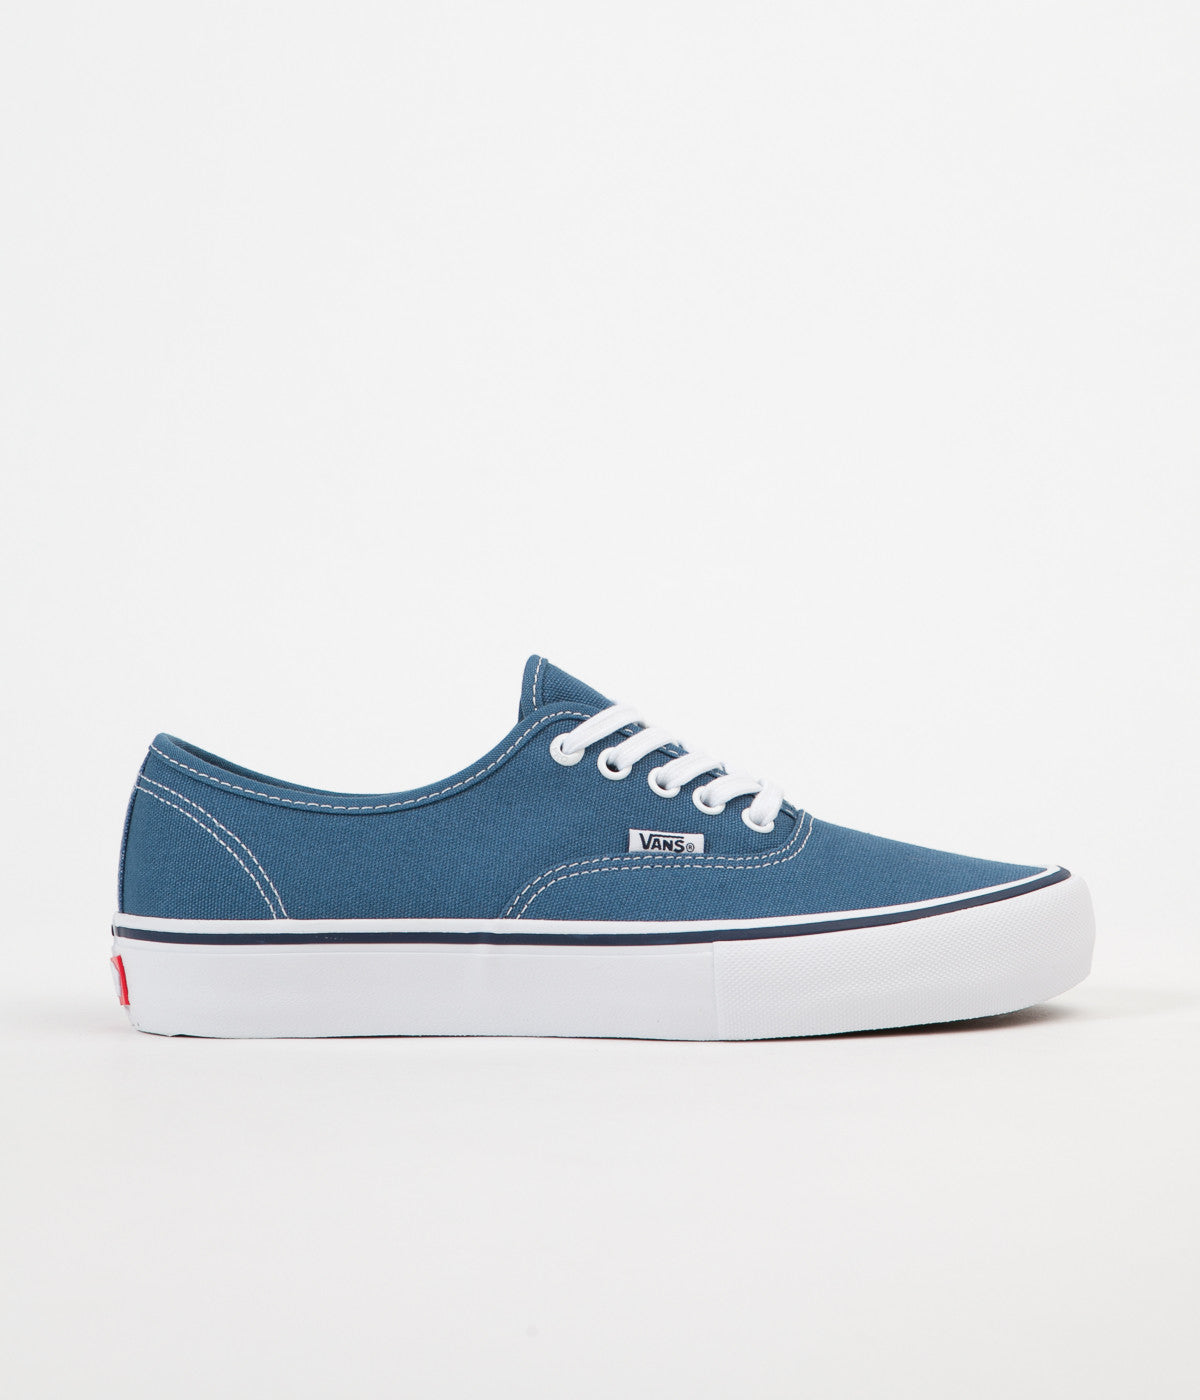 9d759dfa64d35f ... Vans Authentic Pro Shoes - STV Navy   White ...